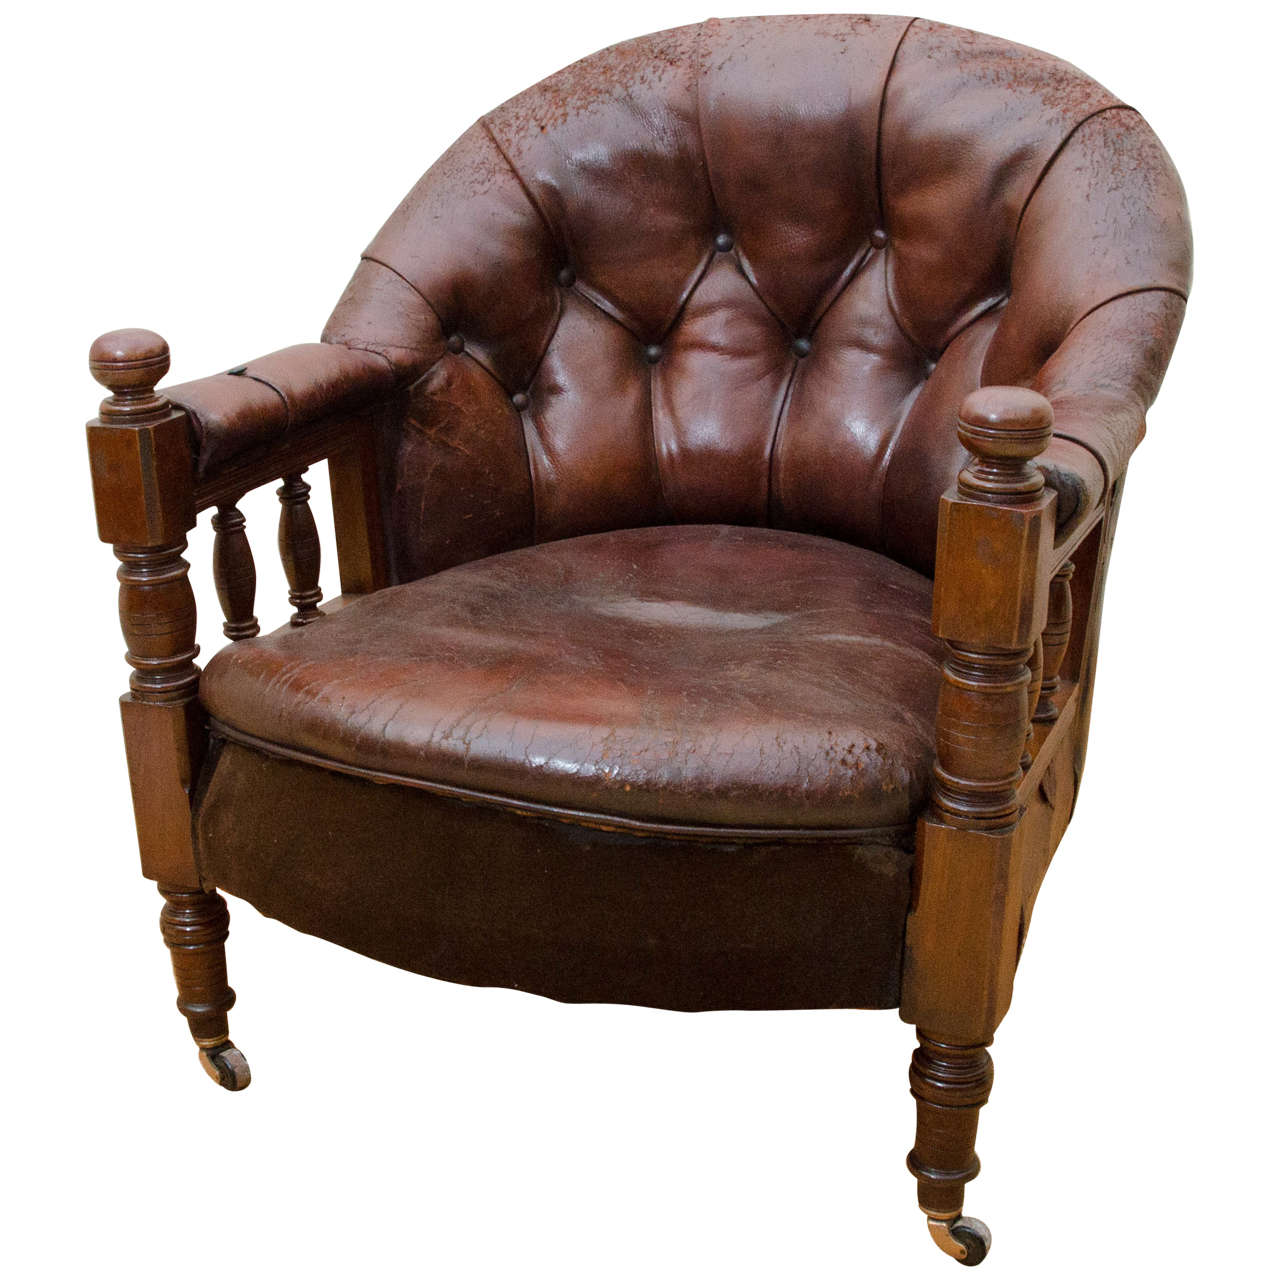 English Victorian Tufted Leather Barrel Back Open Armchair